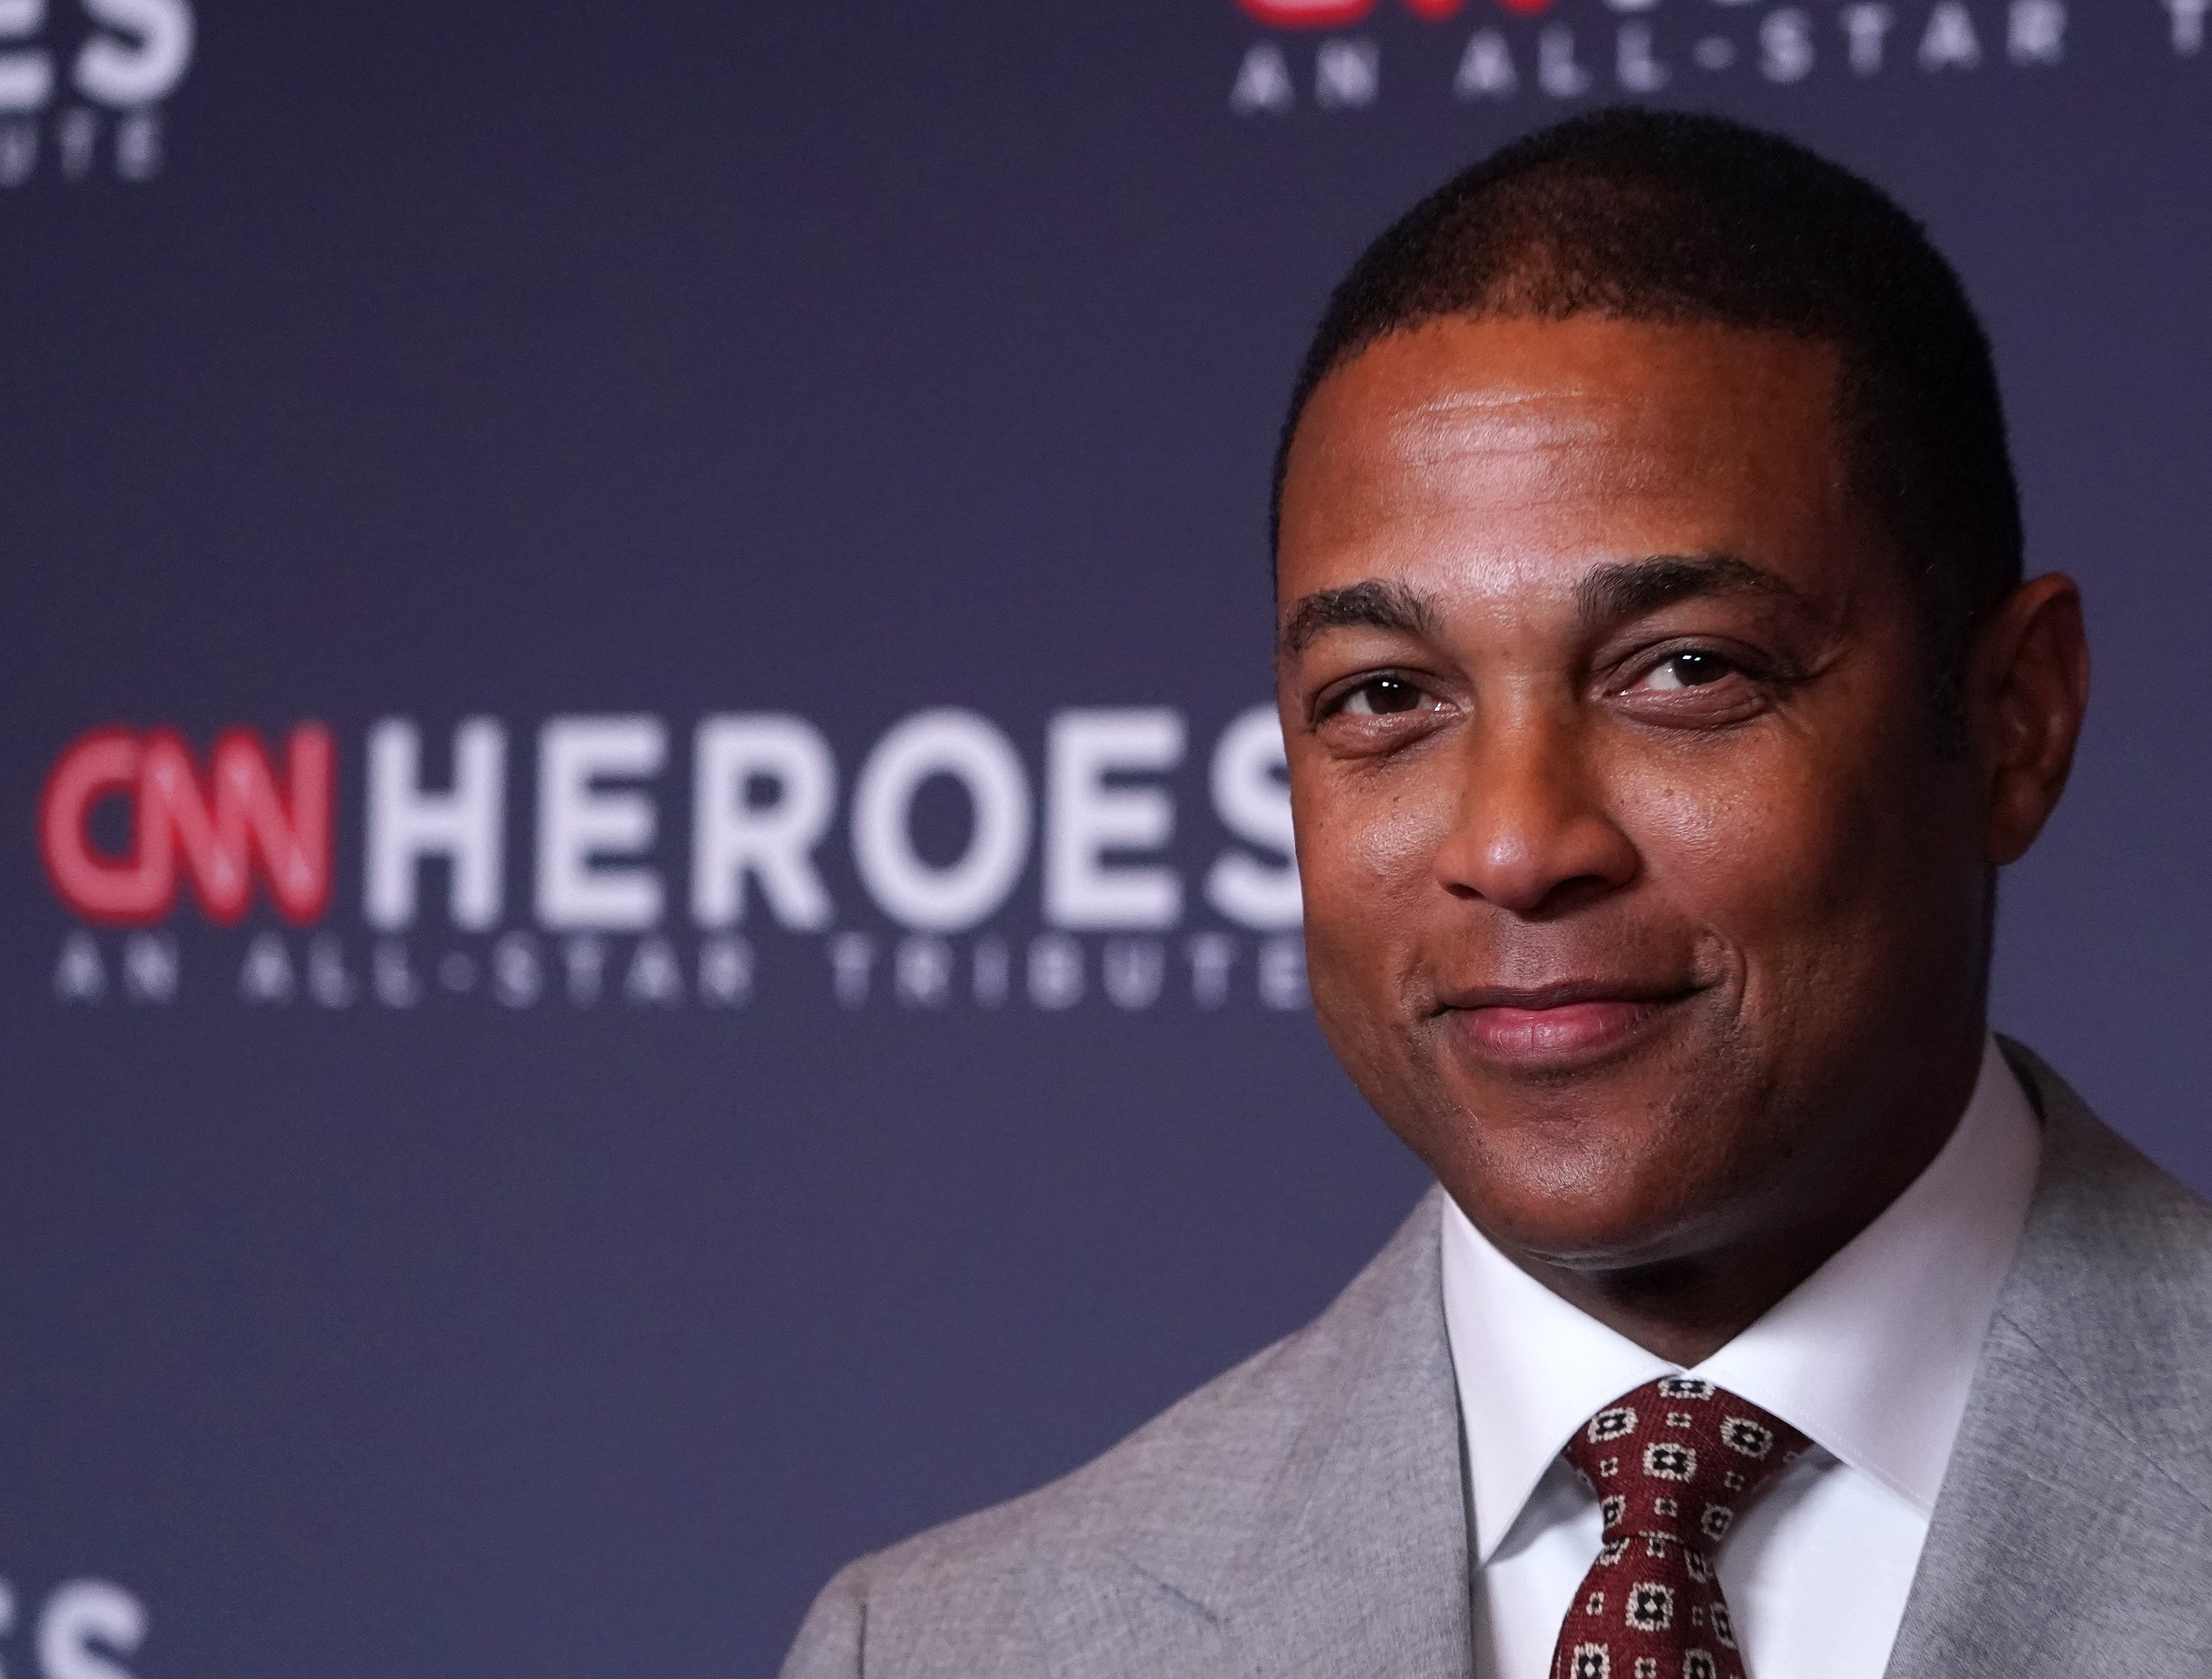 NEW YORK, NEW YORK - DECEMBER 08:  Don Lemon attends the 13th Annual CNN Heroes at the American Museum of Natural History on December 08, 2019 in New York City.